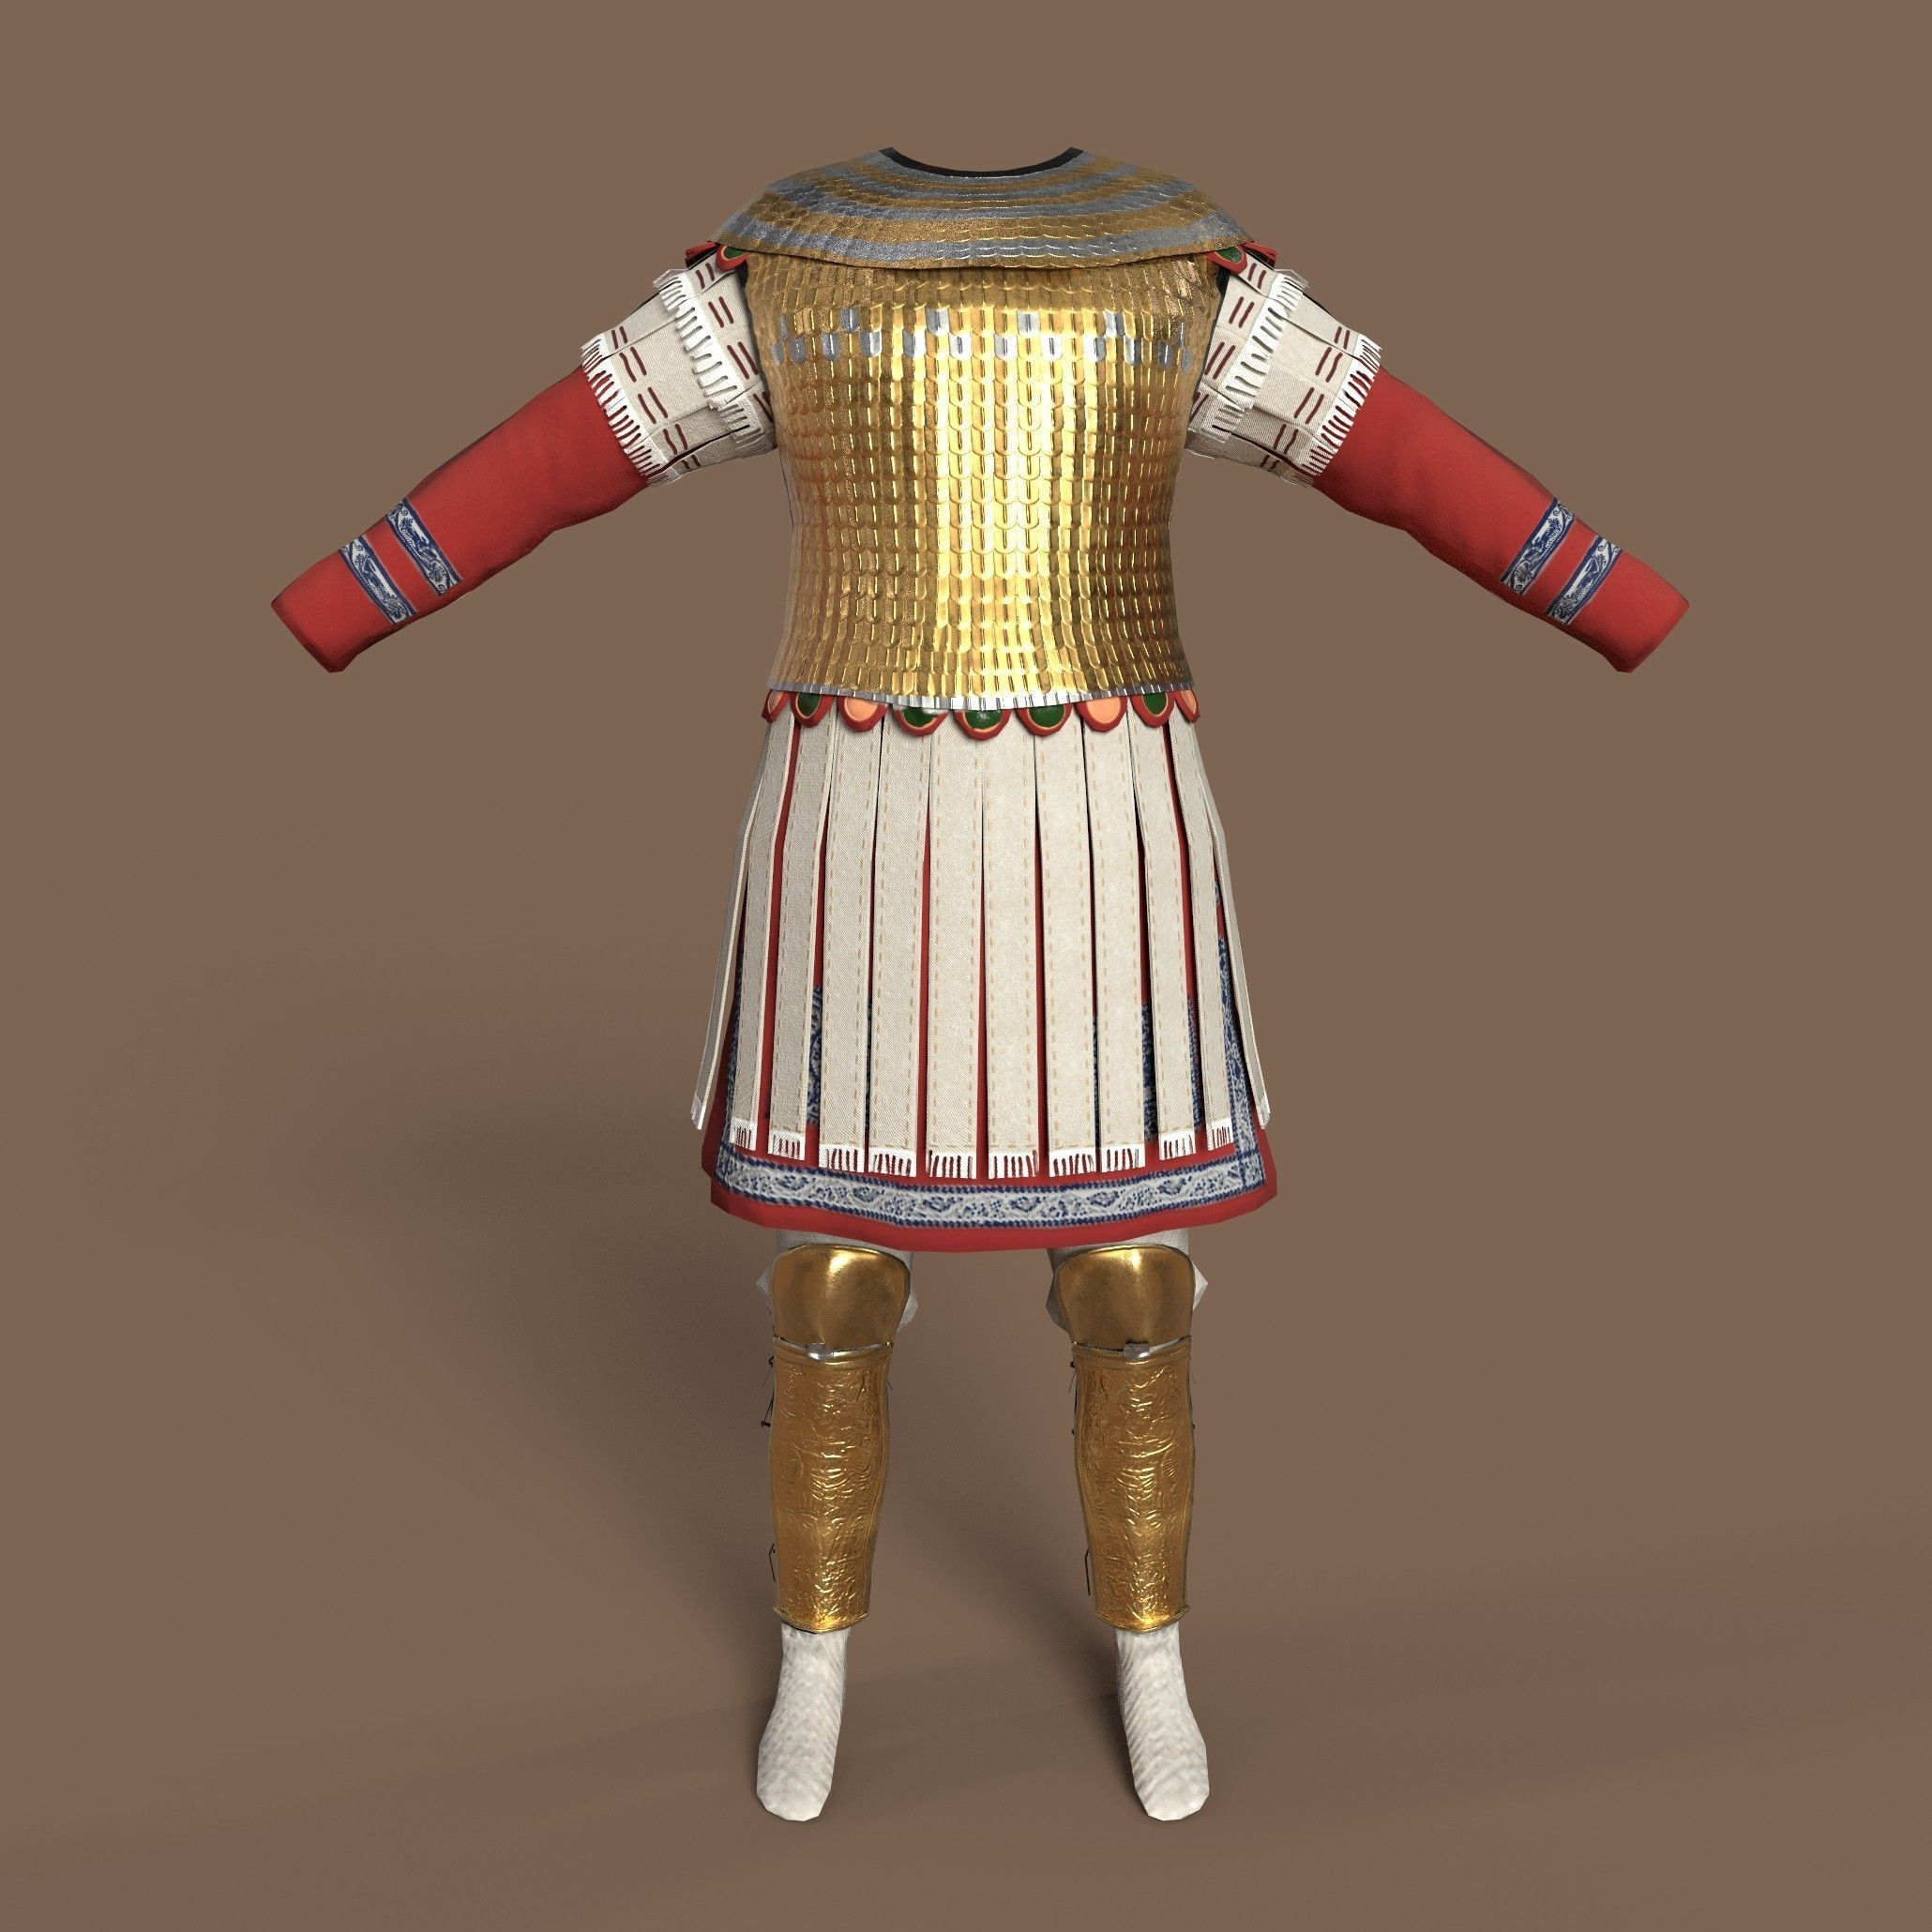 Late Roman officer outfit